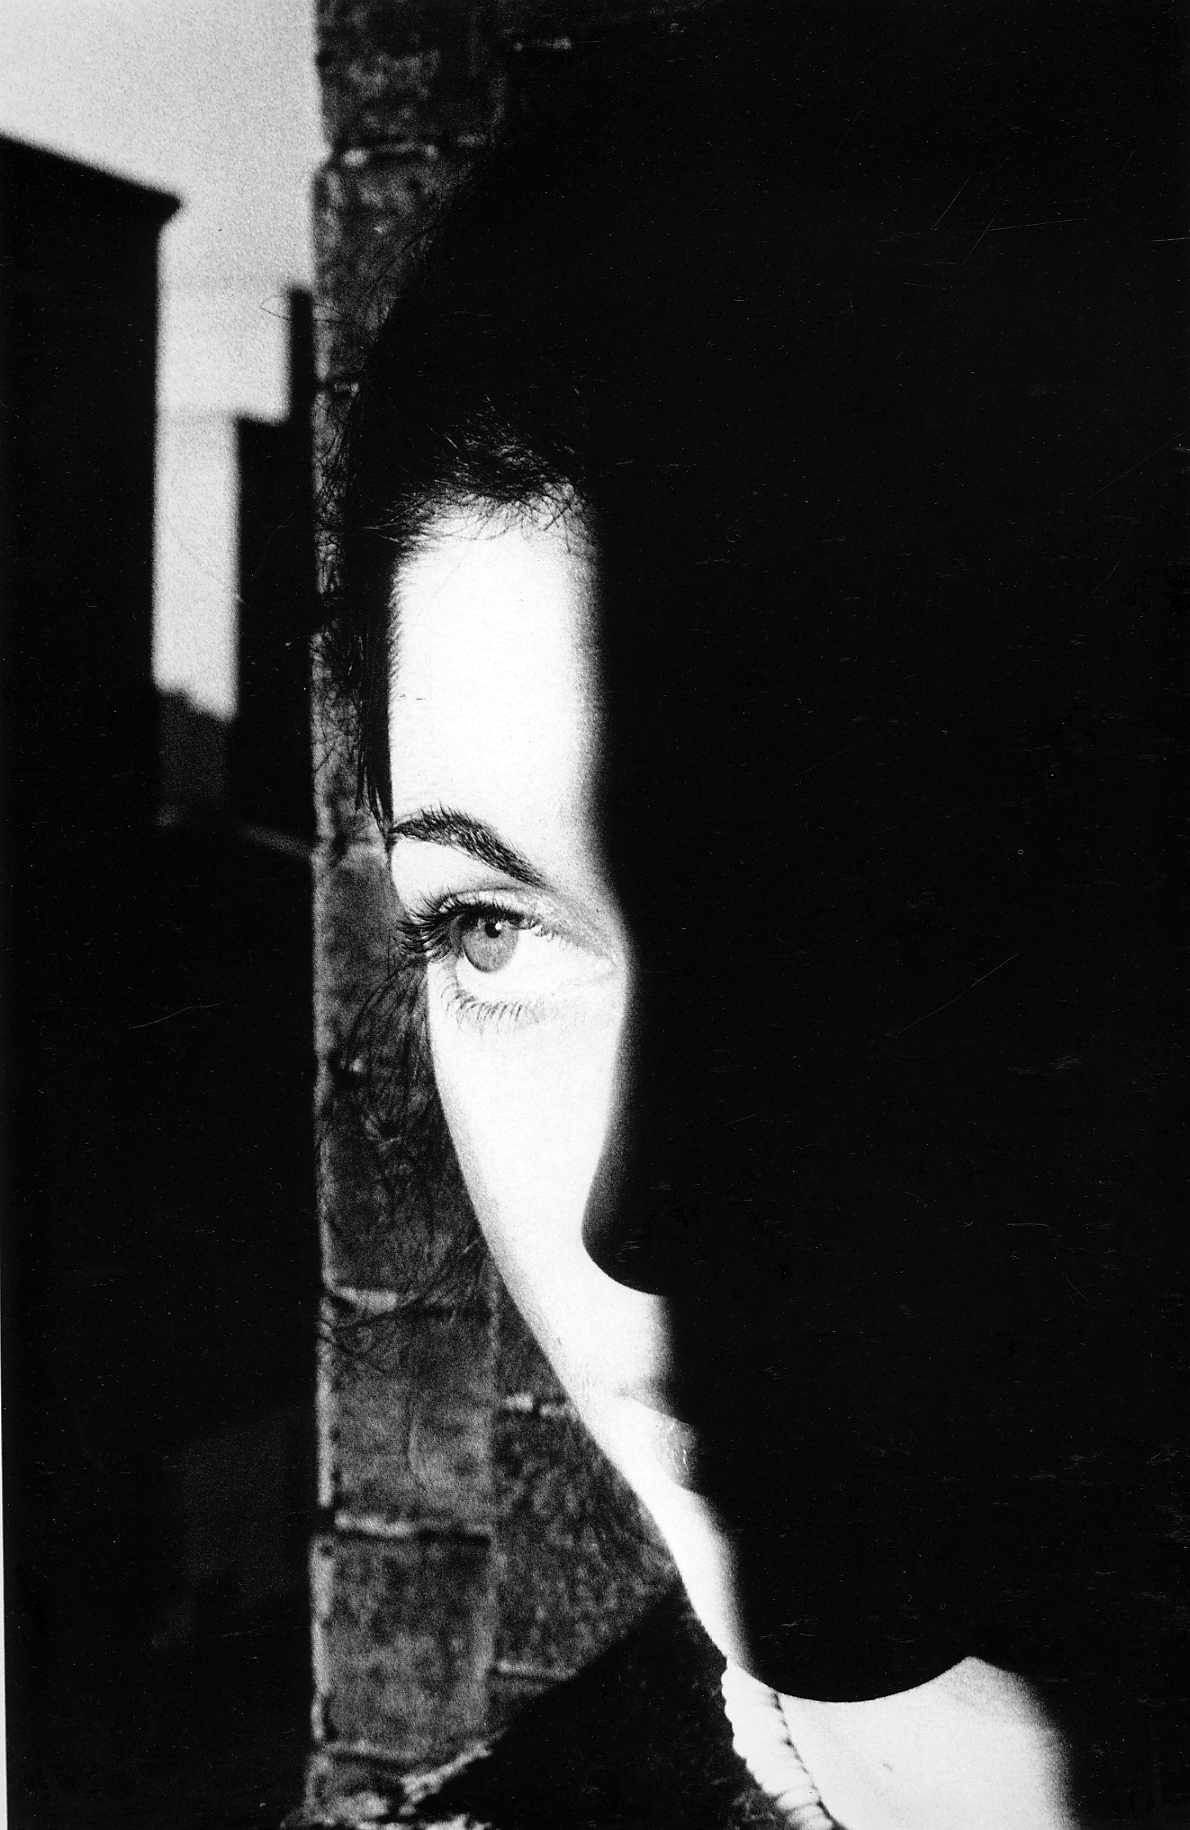 Ralph Gibson - Duality I like the way it has captured a side of the face and that the eye really stands out on this photo and i think that why people always look at the photo just because of the quality In the photo and the eye.